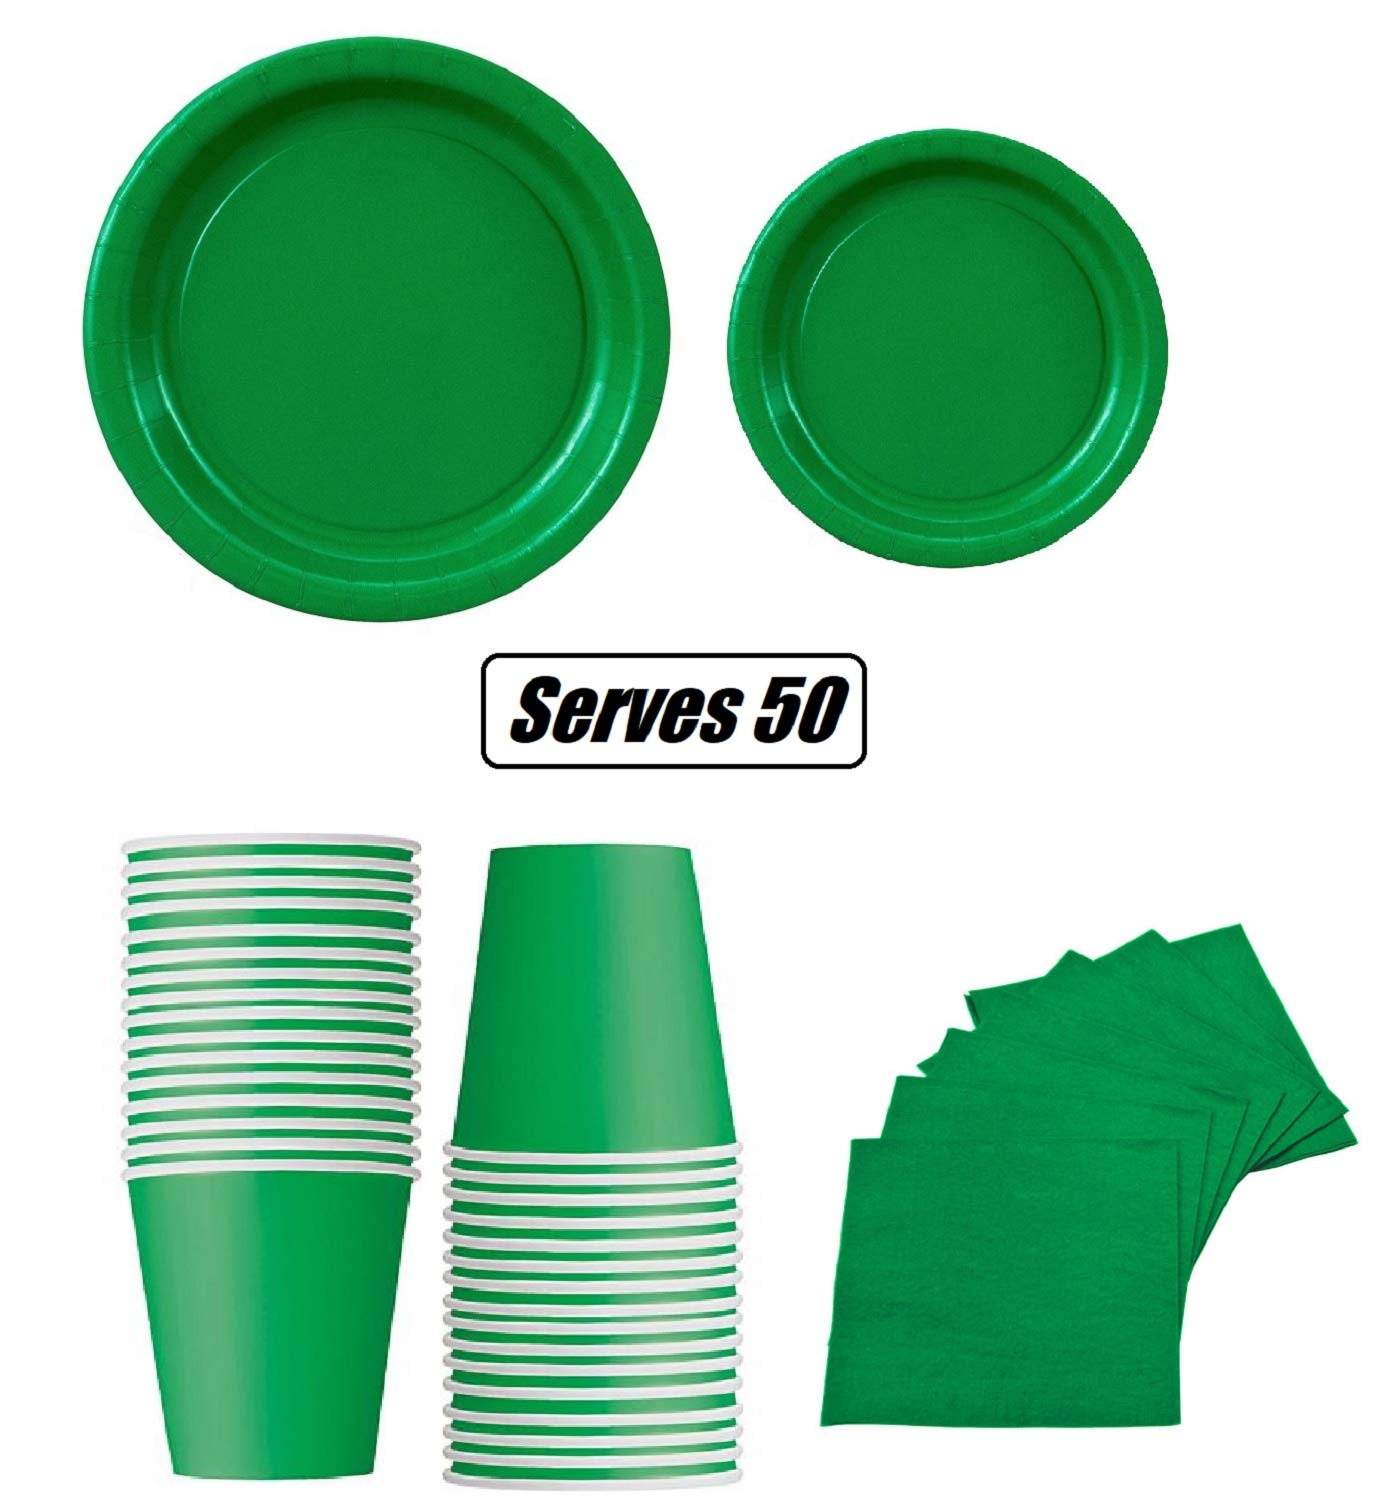 Serves 50 3 Ply Napkins office parties 9 Dinner Paper Plates 7 Dessert Paper Plates Green birthday parties Complete Party Pack festivals Green Party Theme 9 oz Cups